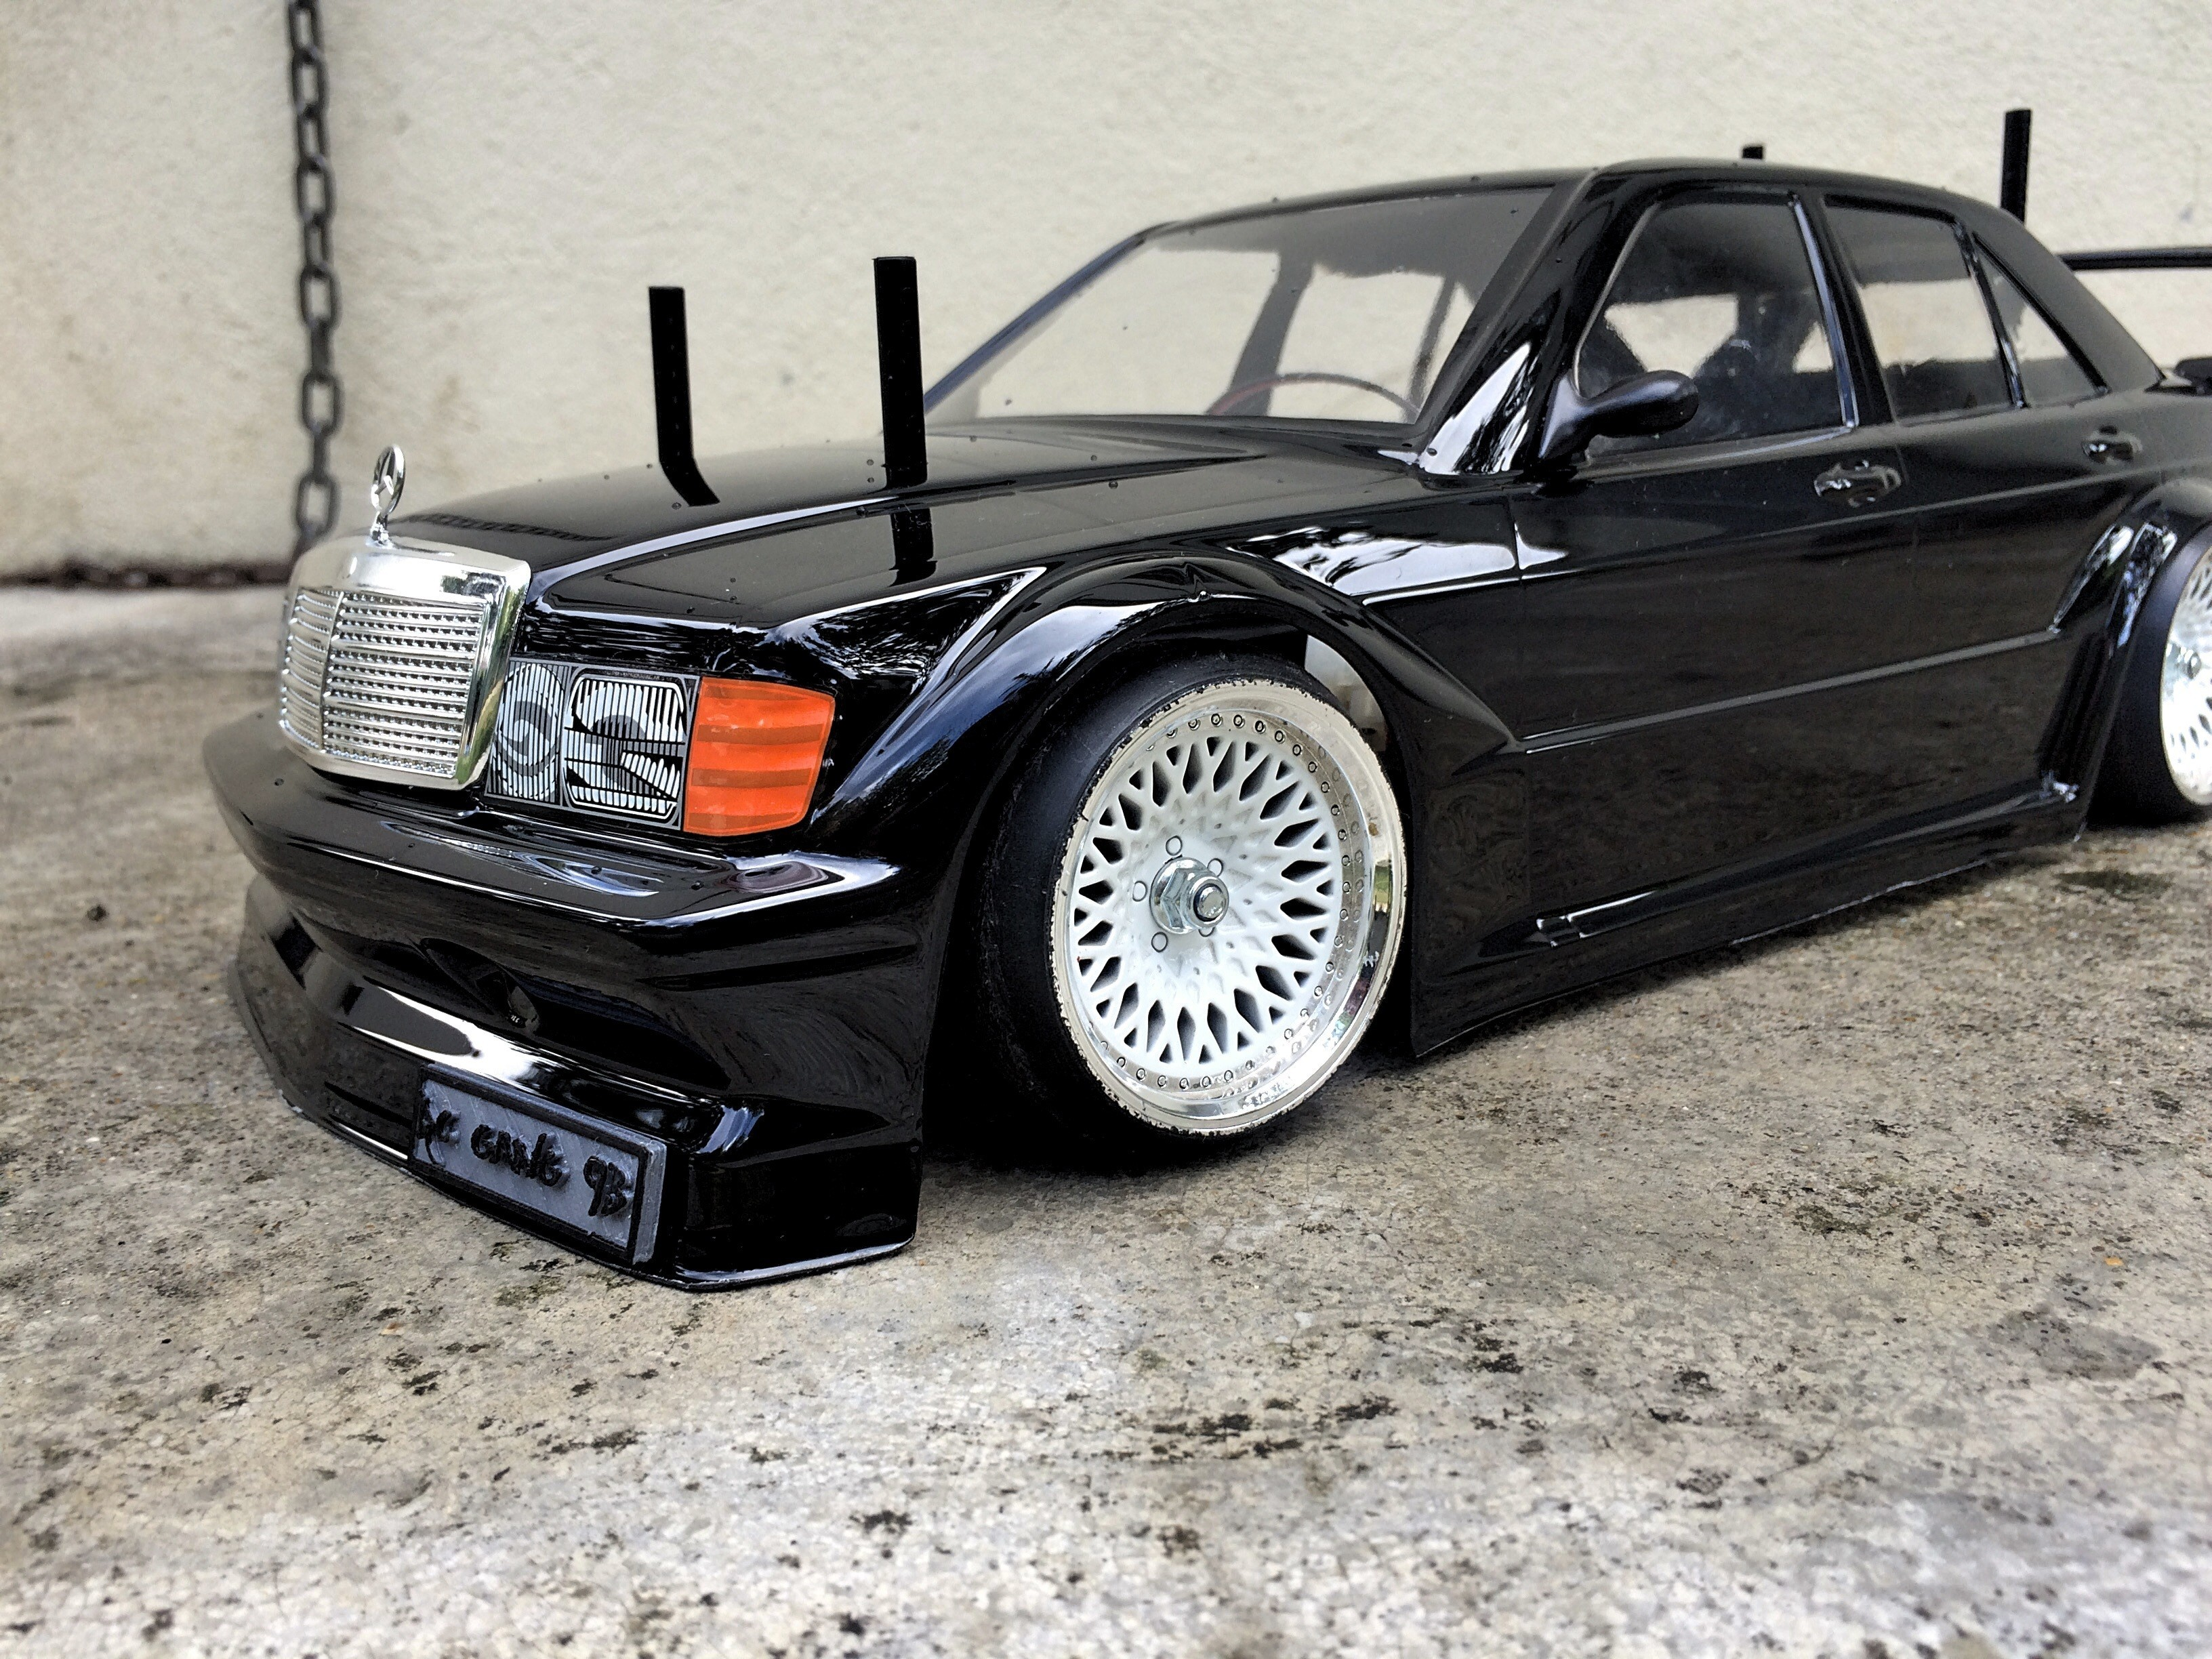 IMG_0256.JPG Download STL file MERCEDES 190 dashboard for rc 1/10 drift • 3D printer object, RCGANG93